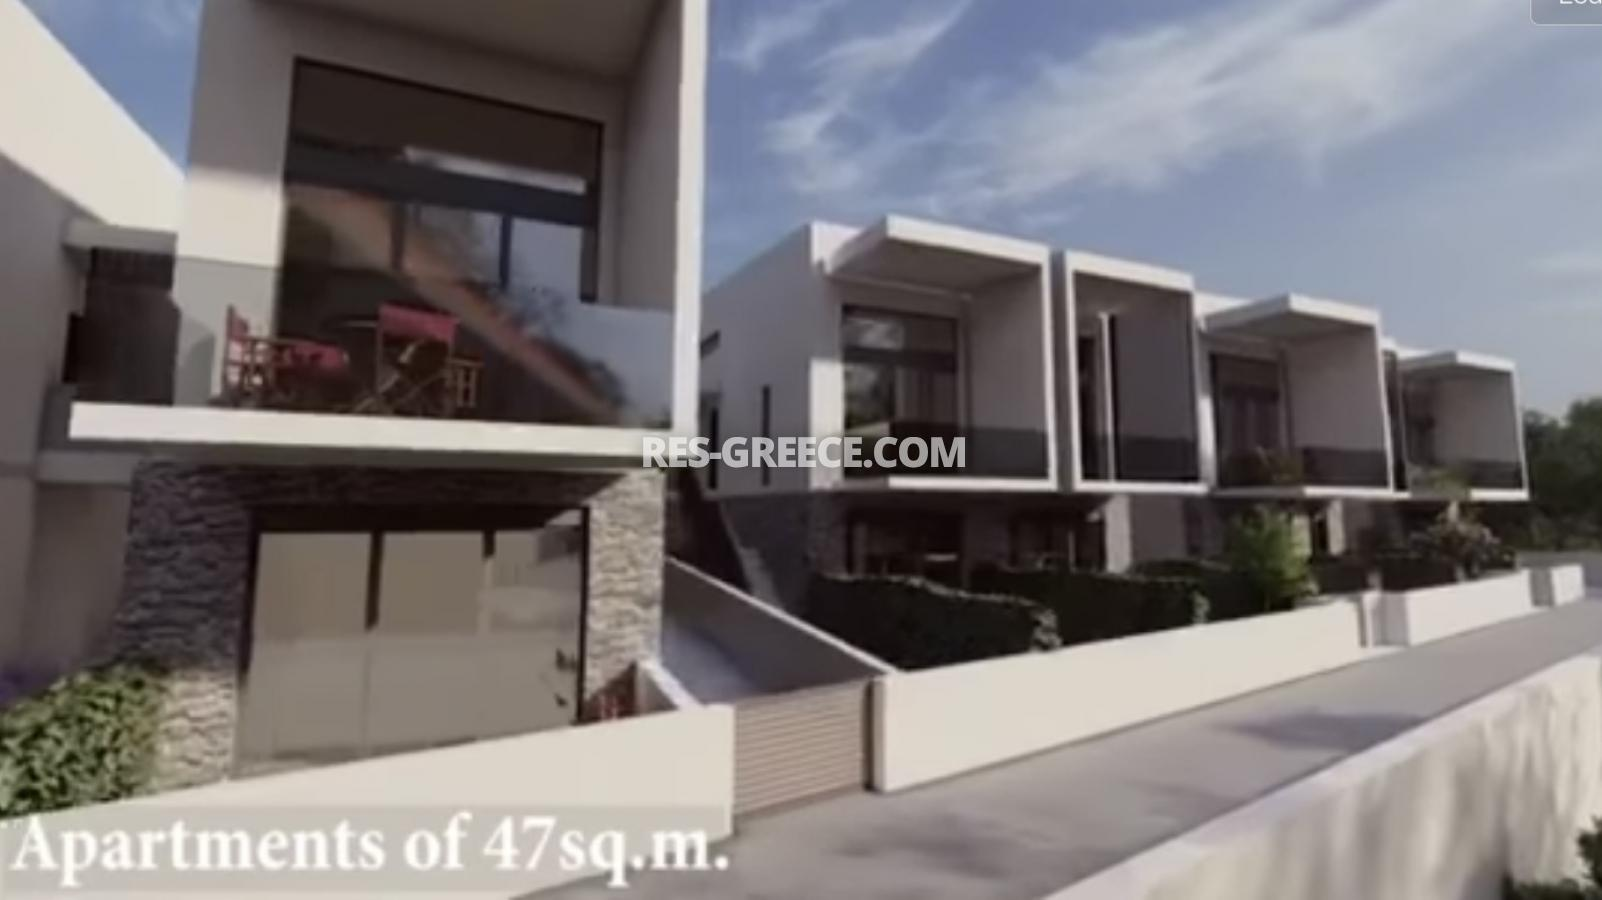 Anasa apartments, Halkidiki-Sithonia, Greece - apartments in a new complex with pool - Photo 10